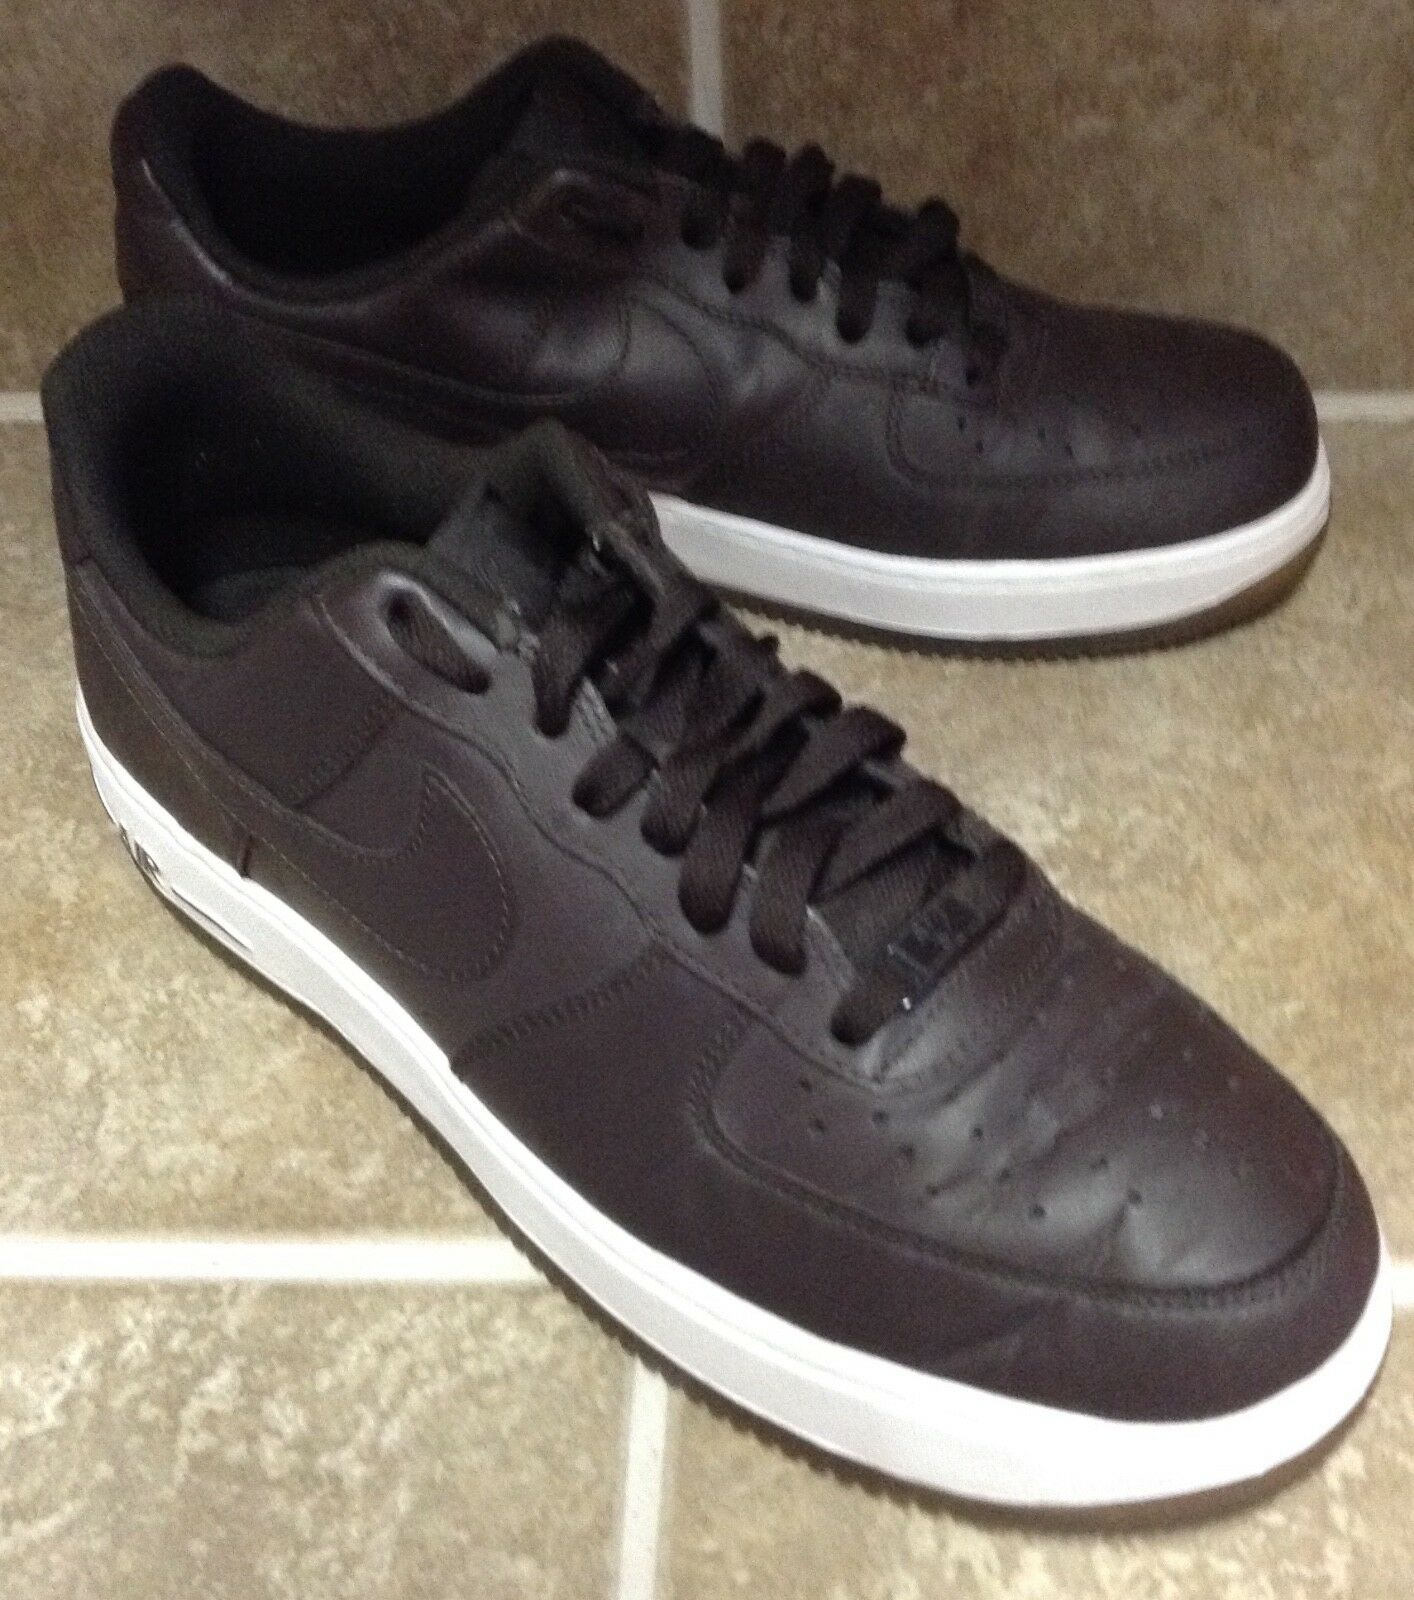 NIKE AIR FORCE ONE LOW VELVET BROWN - WHITE MEN'S 9.5 SNEAKERS Price reduction Comfortable and good-looking